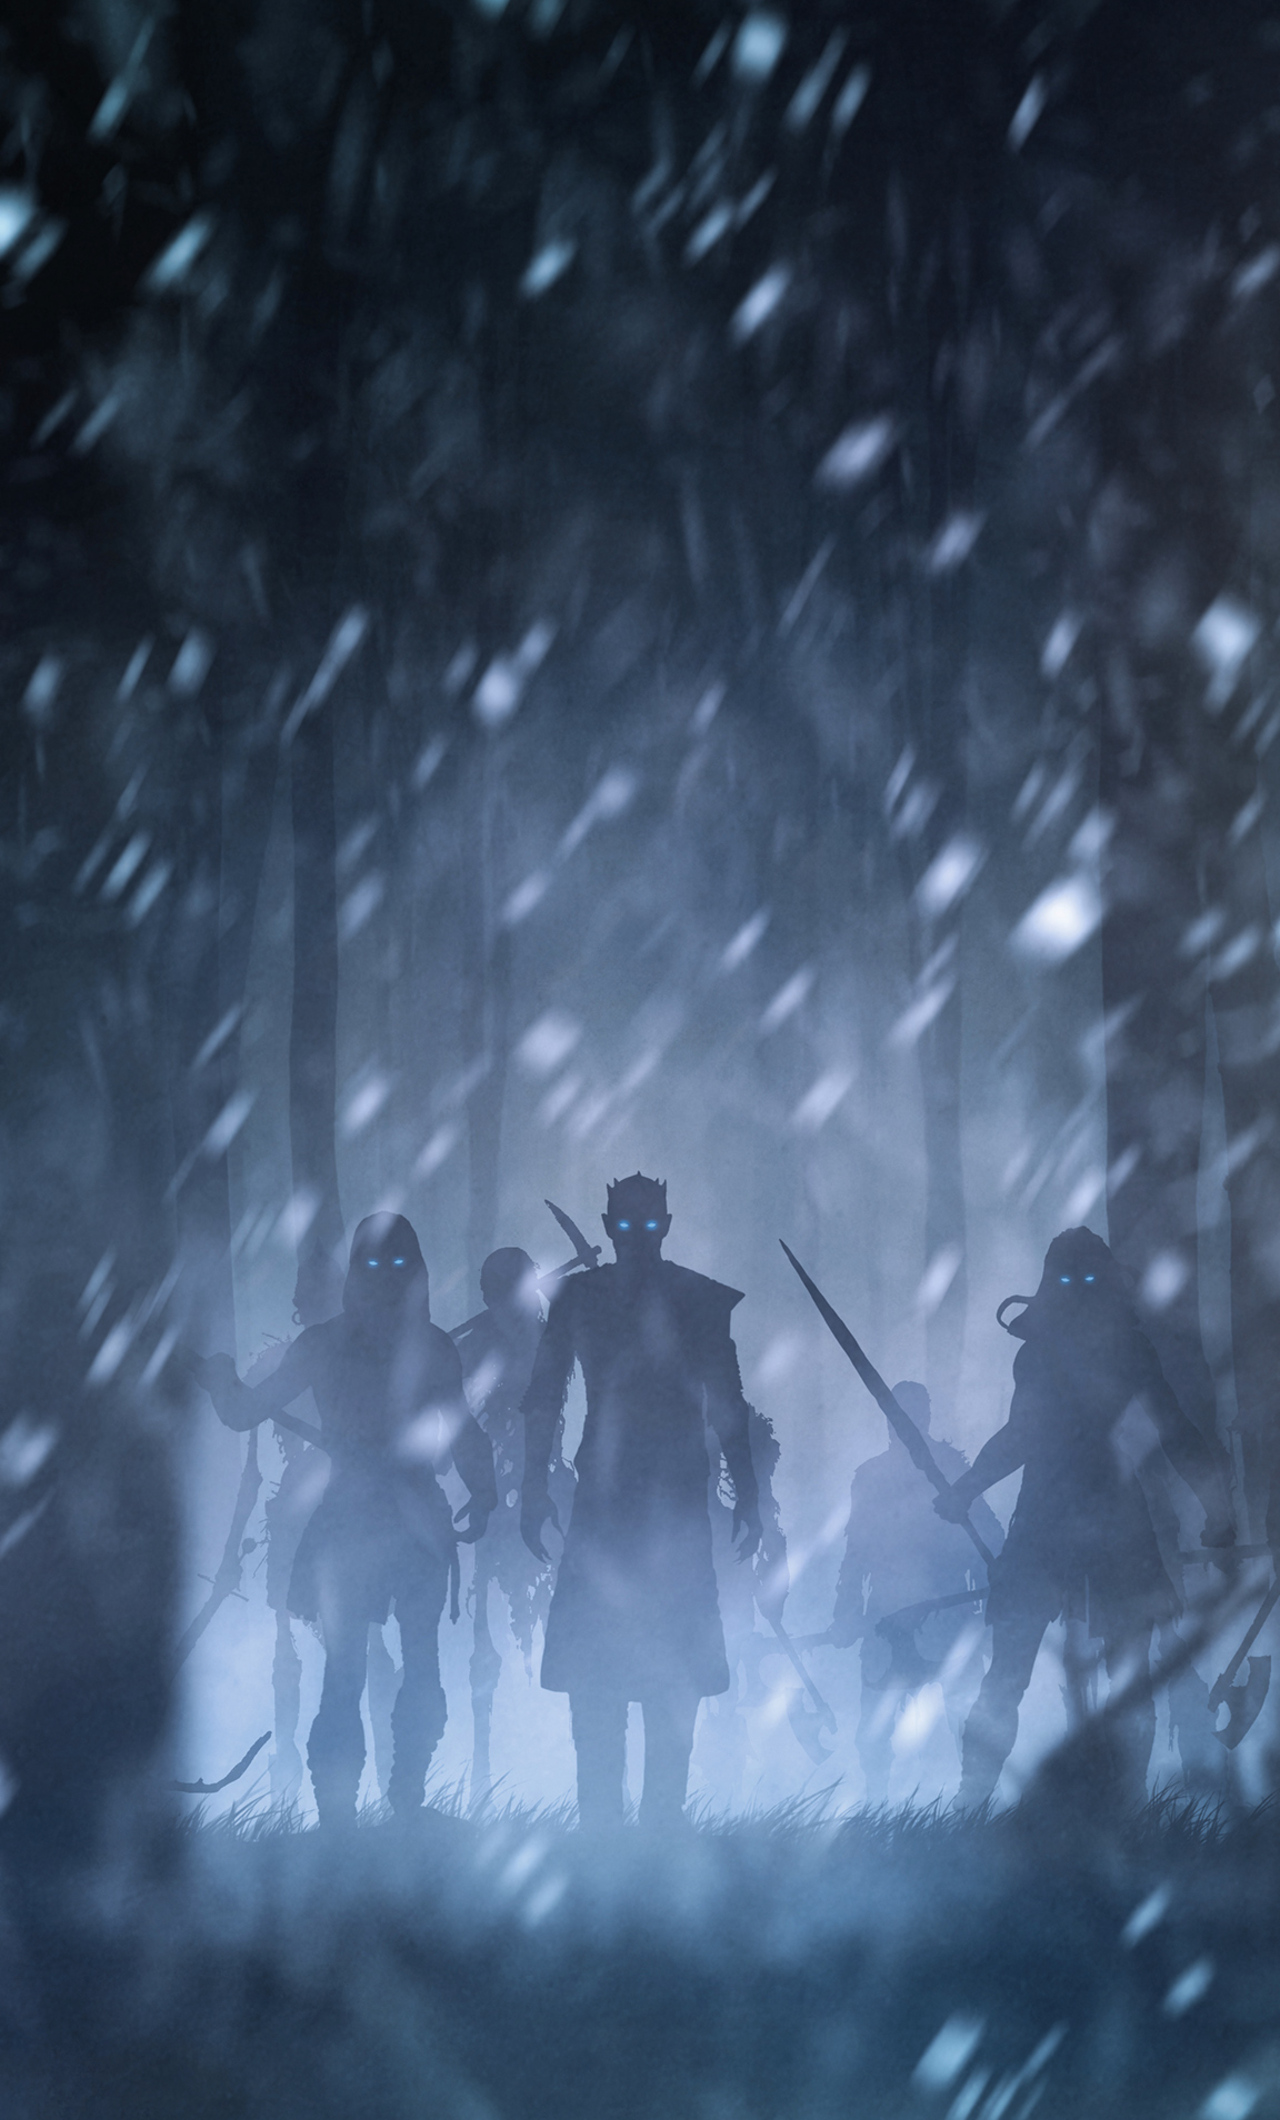 night-king-with-white-walkers-artwork-sh.jpg